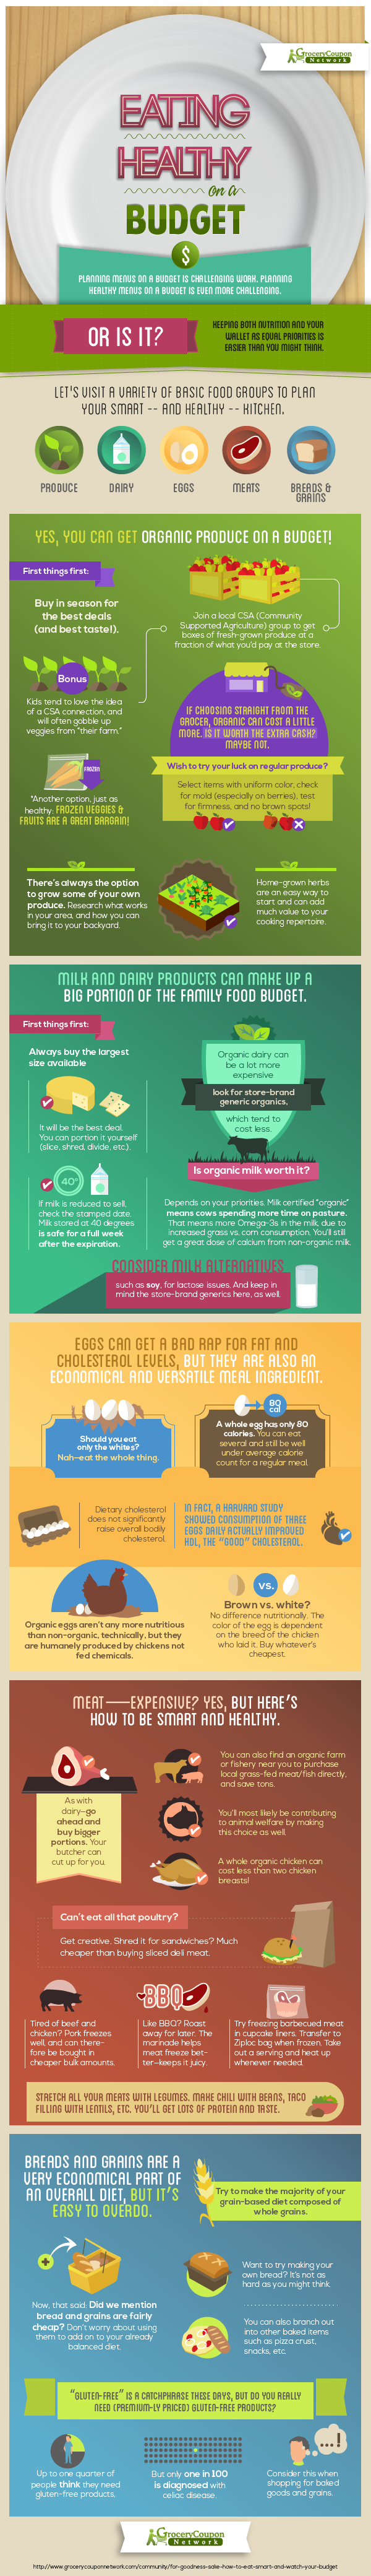 30 Tips On How to Eat Smart on a Budget